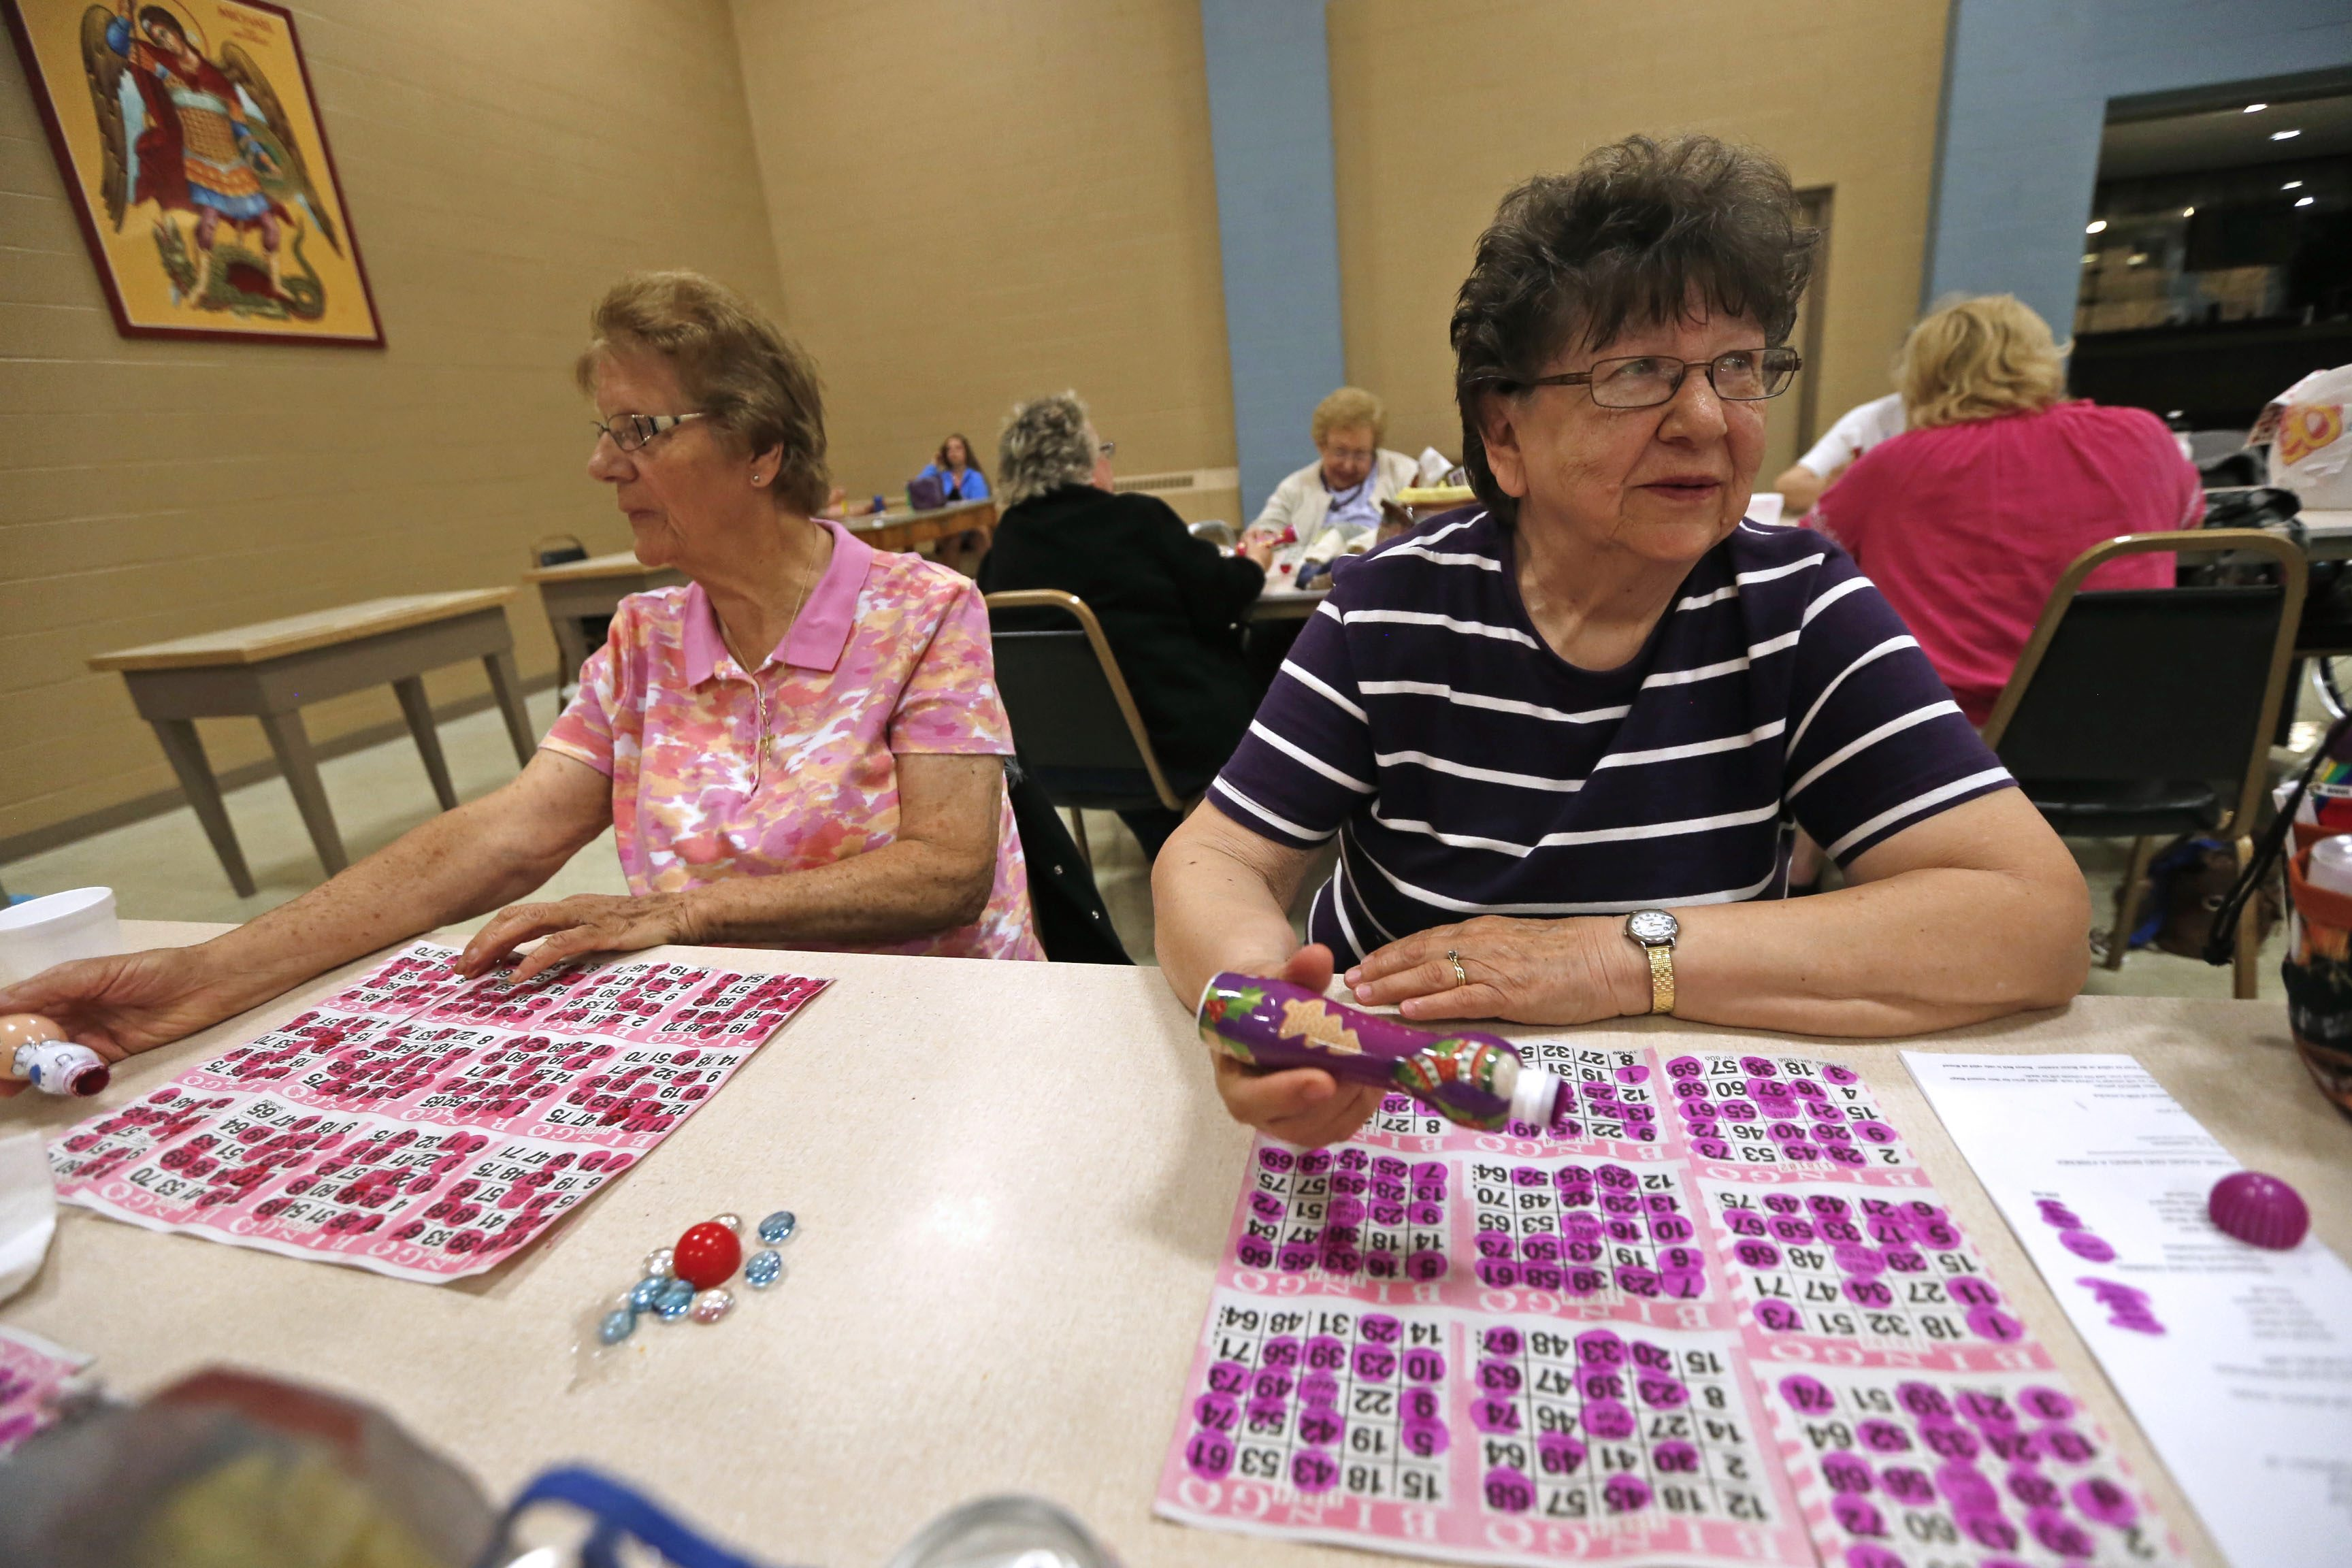 Audrey Dreczka, right, who raised all of her children across the street from the church, uses an ink stamp bottle to mark her cards on Wednesday night BINGO event at the Queen of Angels Parish Community Center on Electric Avenue near Warsaw Street. The community center, which is ground zero for this poverty census study has been a gathering place for decades. (Robert Kirkham/Buffalo News)